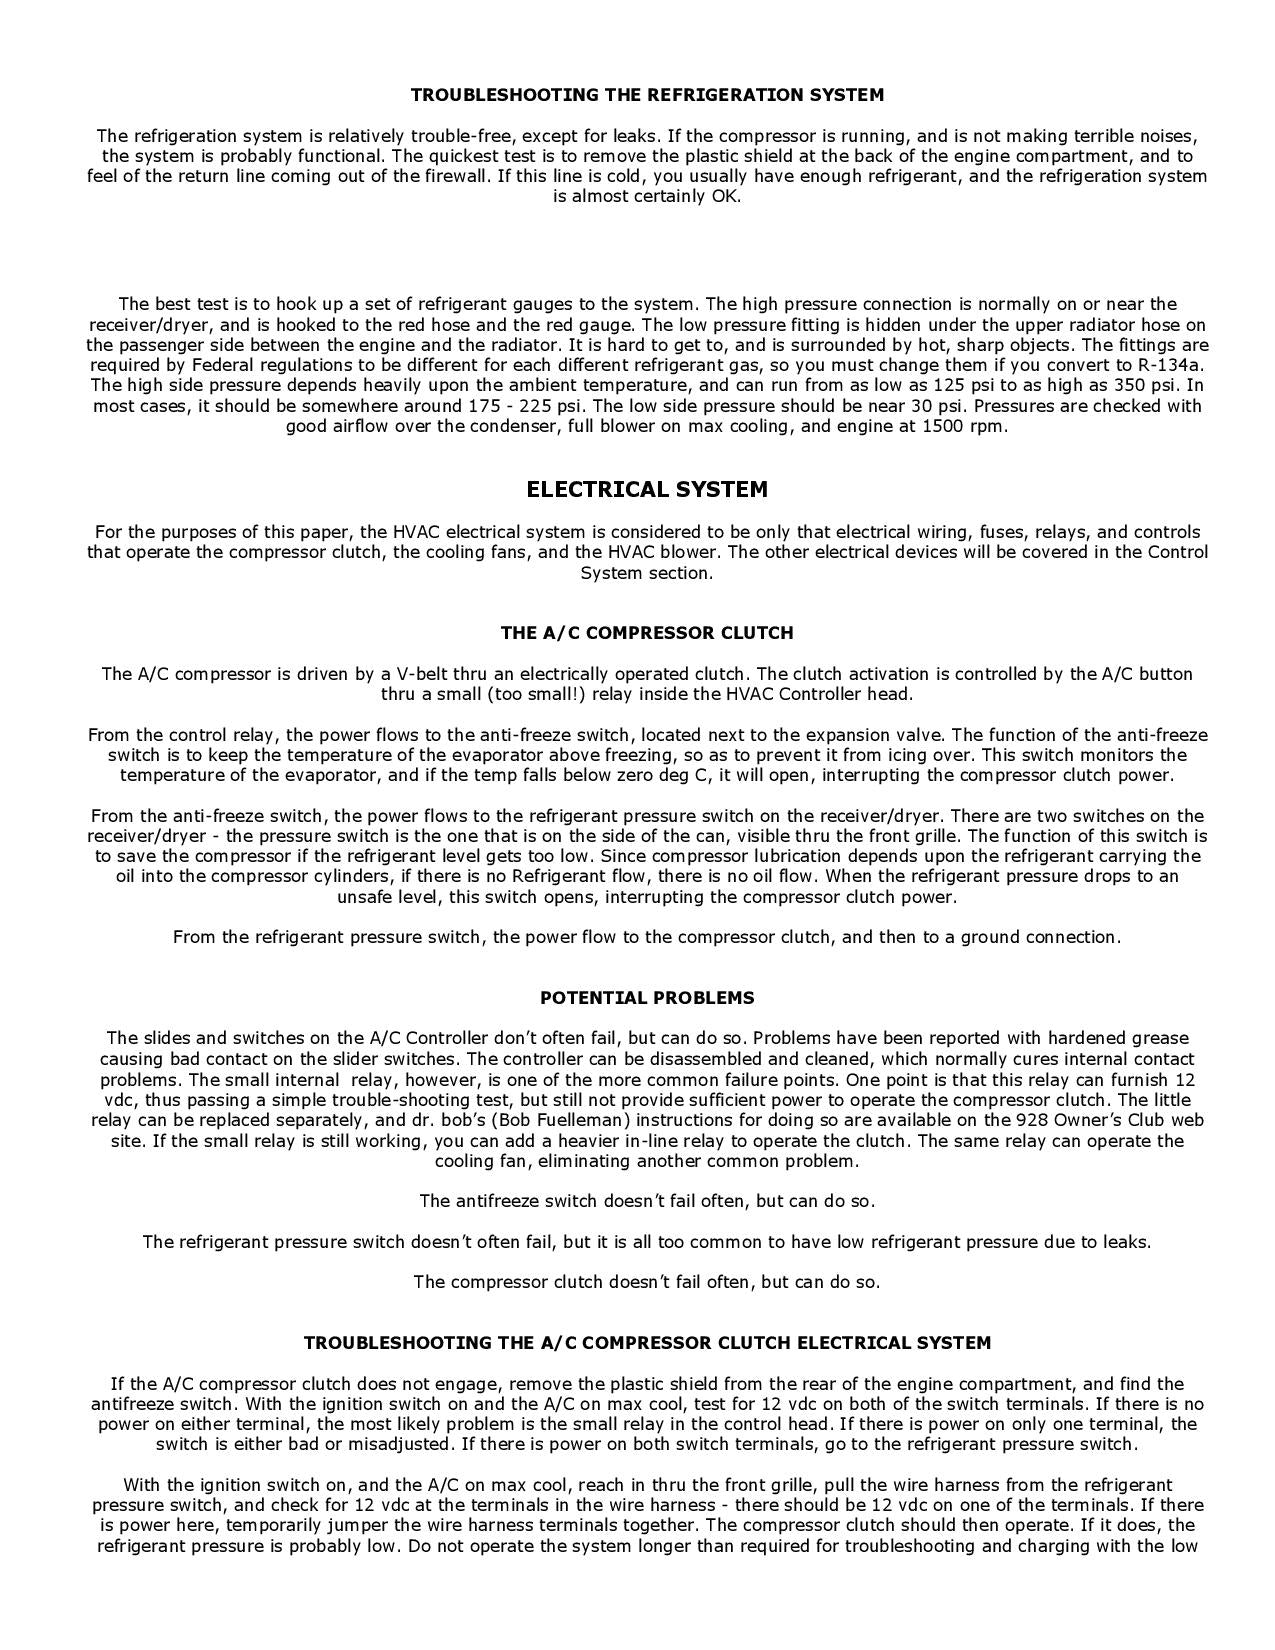 Troubleshooting the Refigeration System pg1